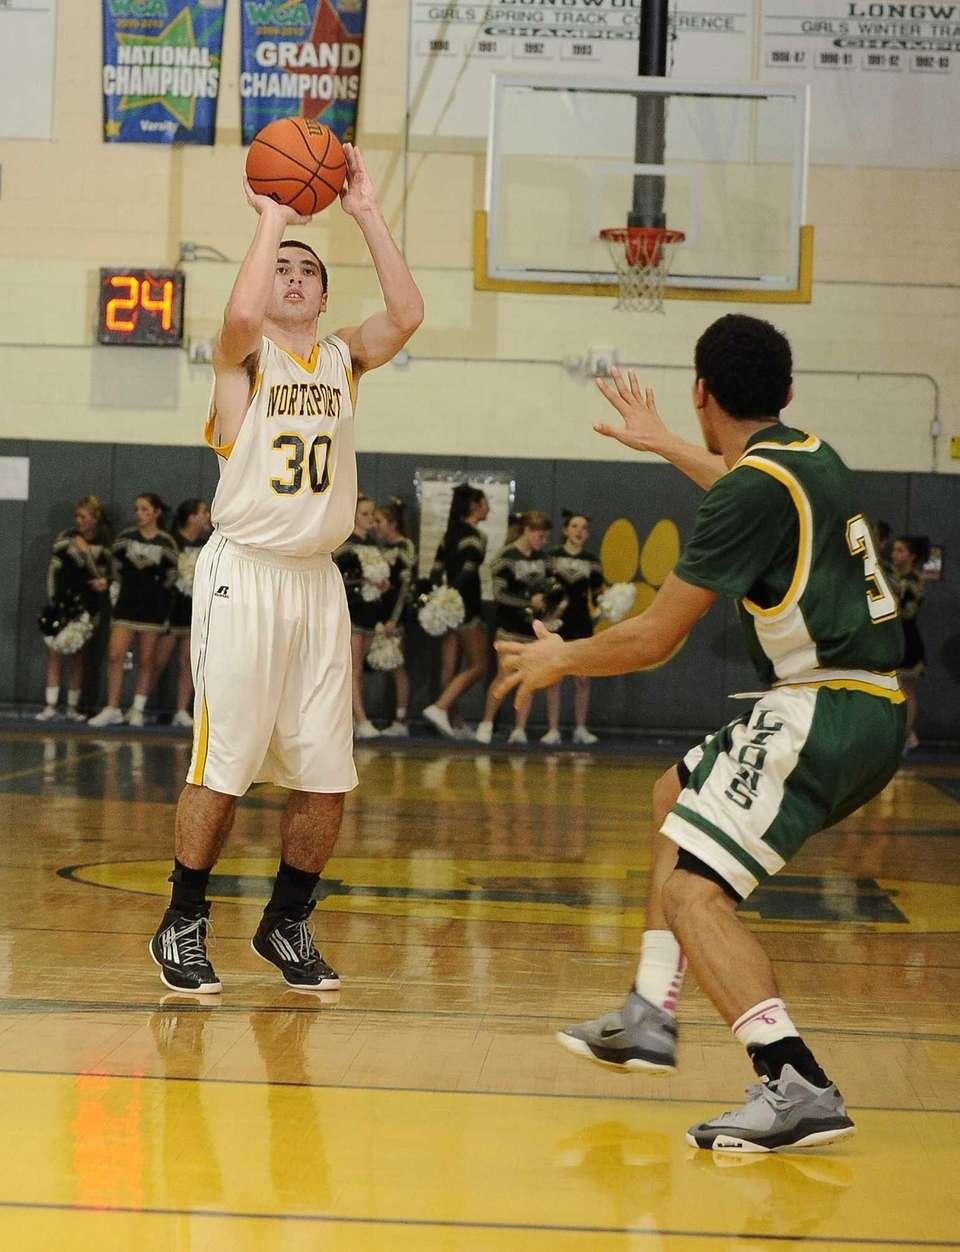 Northport's Matt Smith shoots ahead of Longwood's Walter